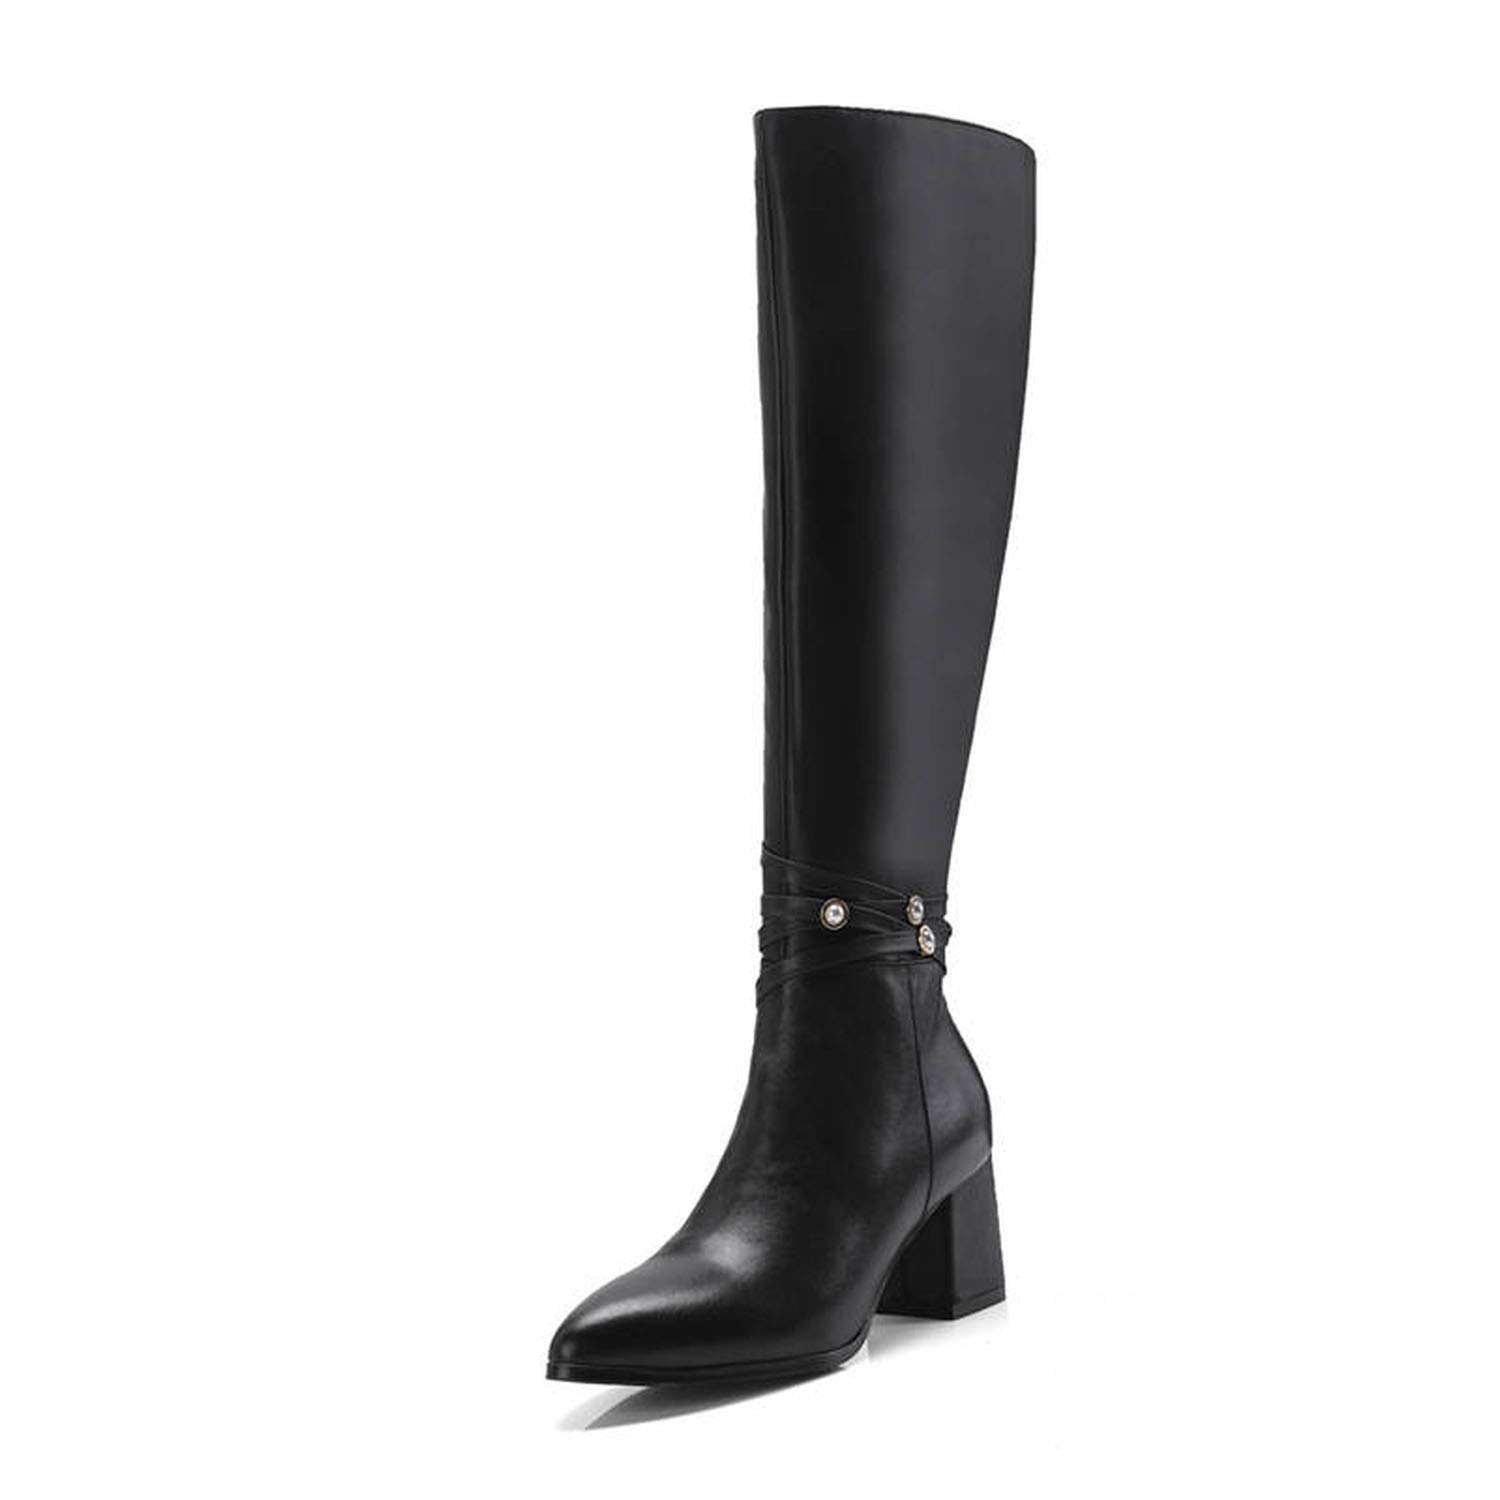 Black Together to create a miracle 2018 Newest Knee Genuine Leather Boots Warm Autumn Winter Boots high Heels shoes Woman